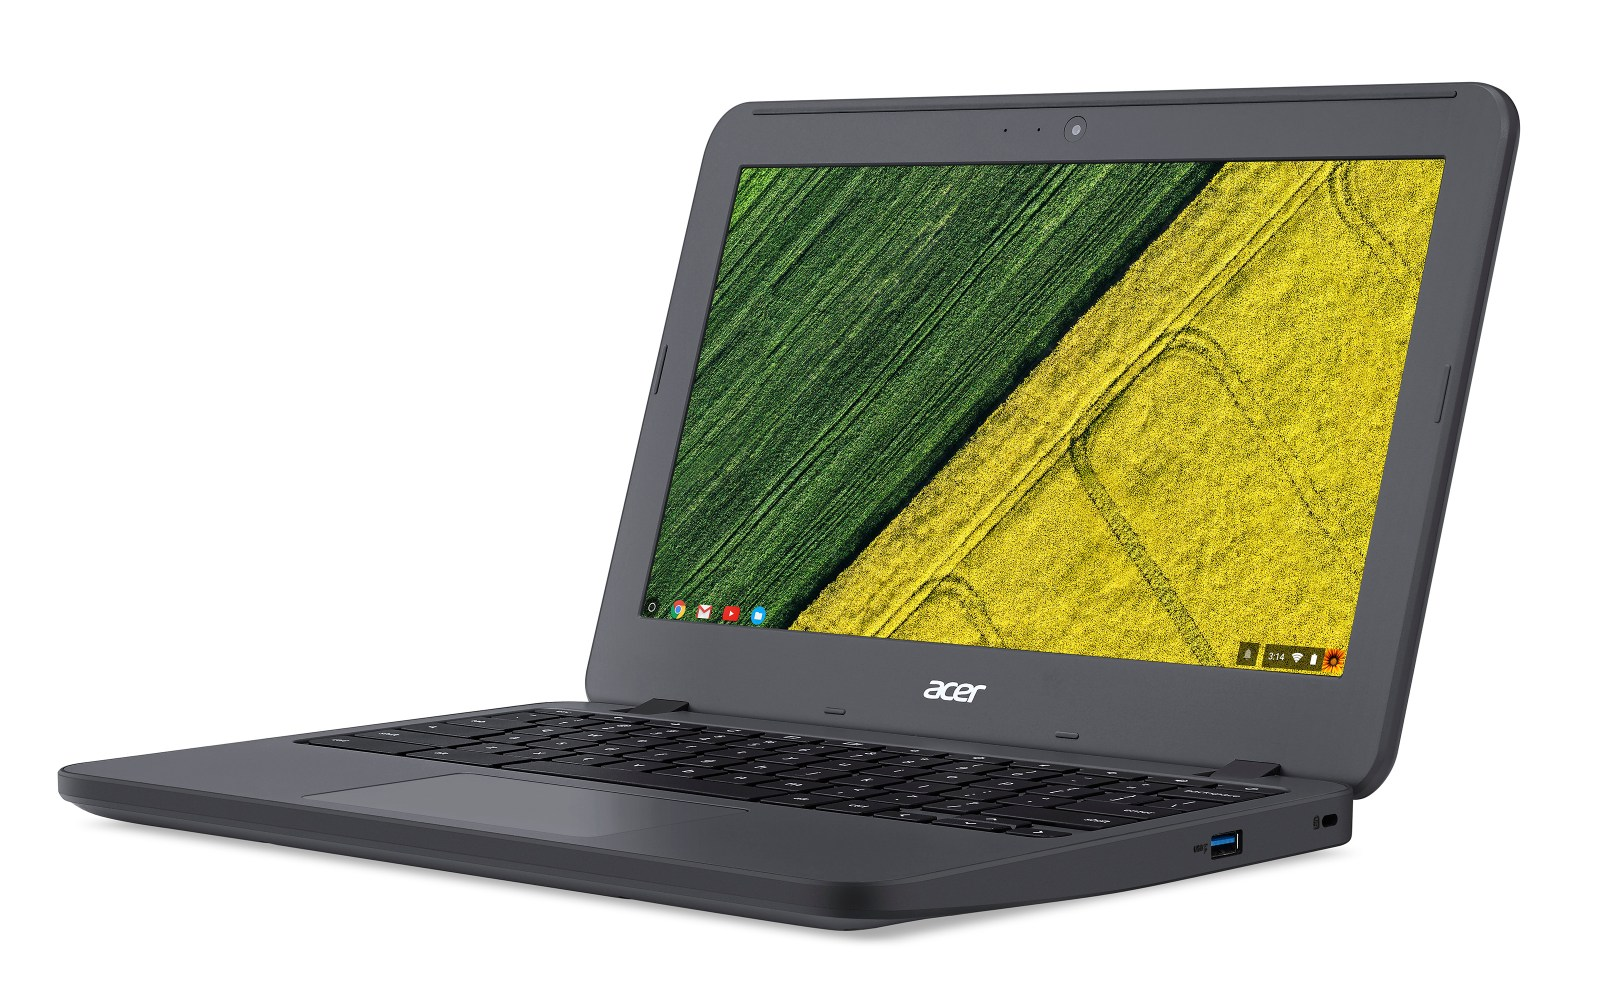 Acer debuts the education-focused rugged Chromebook N7 at CES 2017